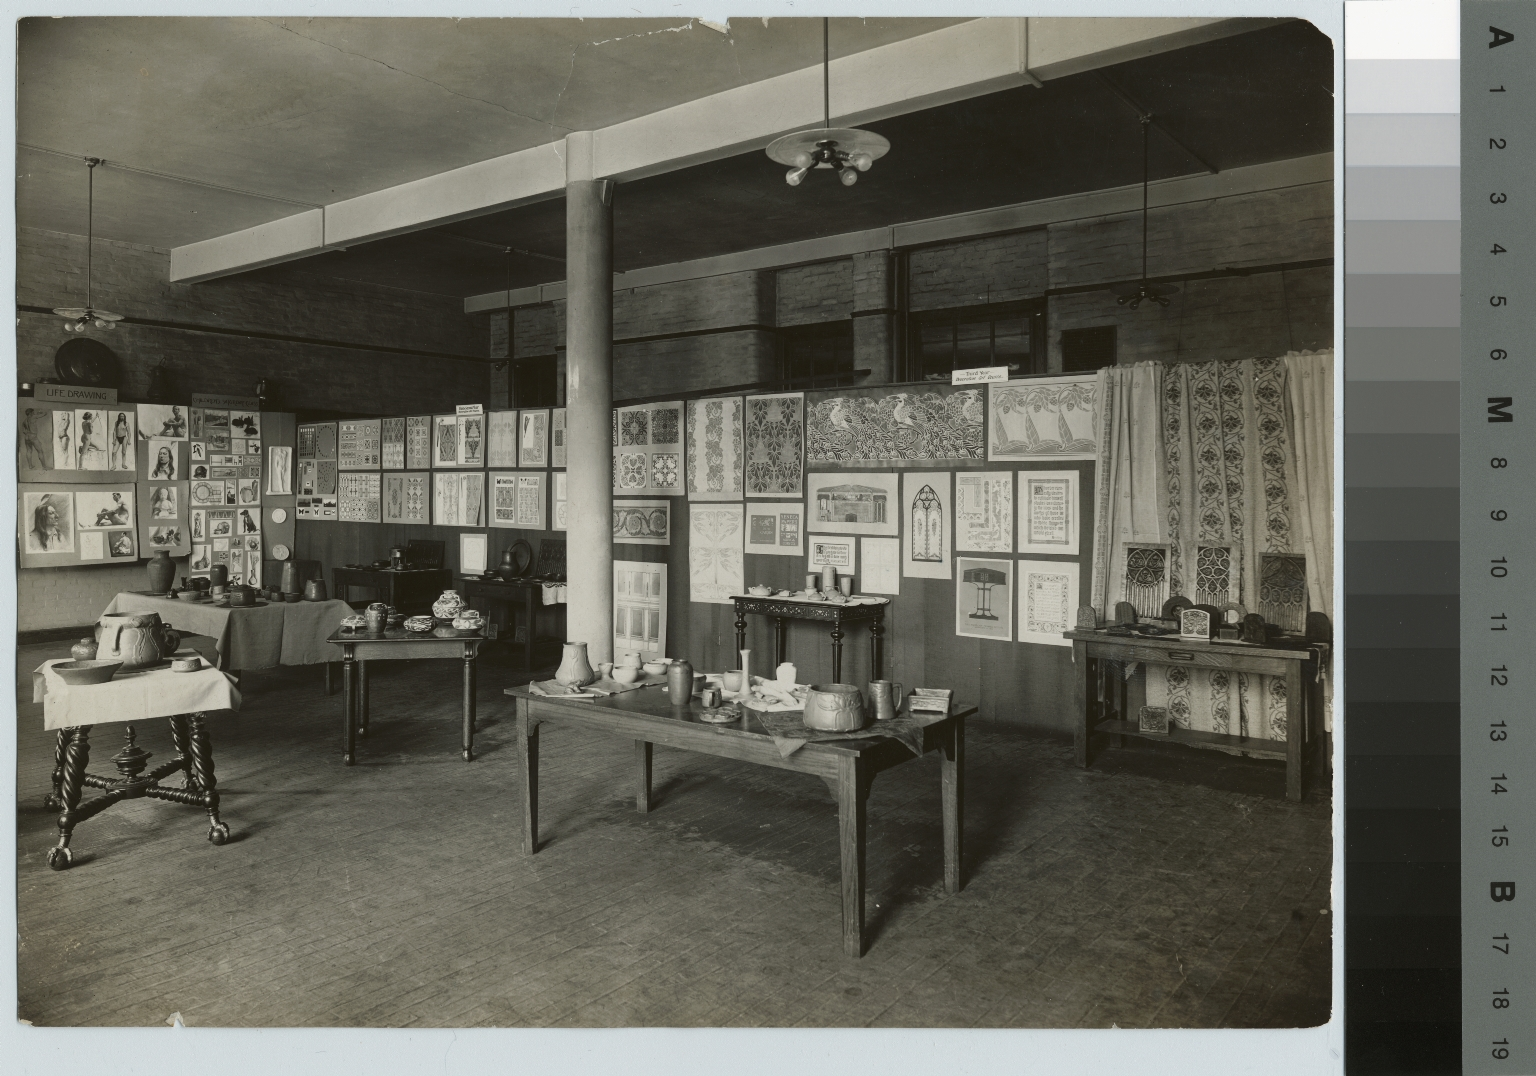 Academics, art and design, interior view of an exhibition of student work, 1910